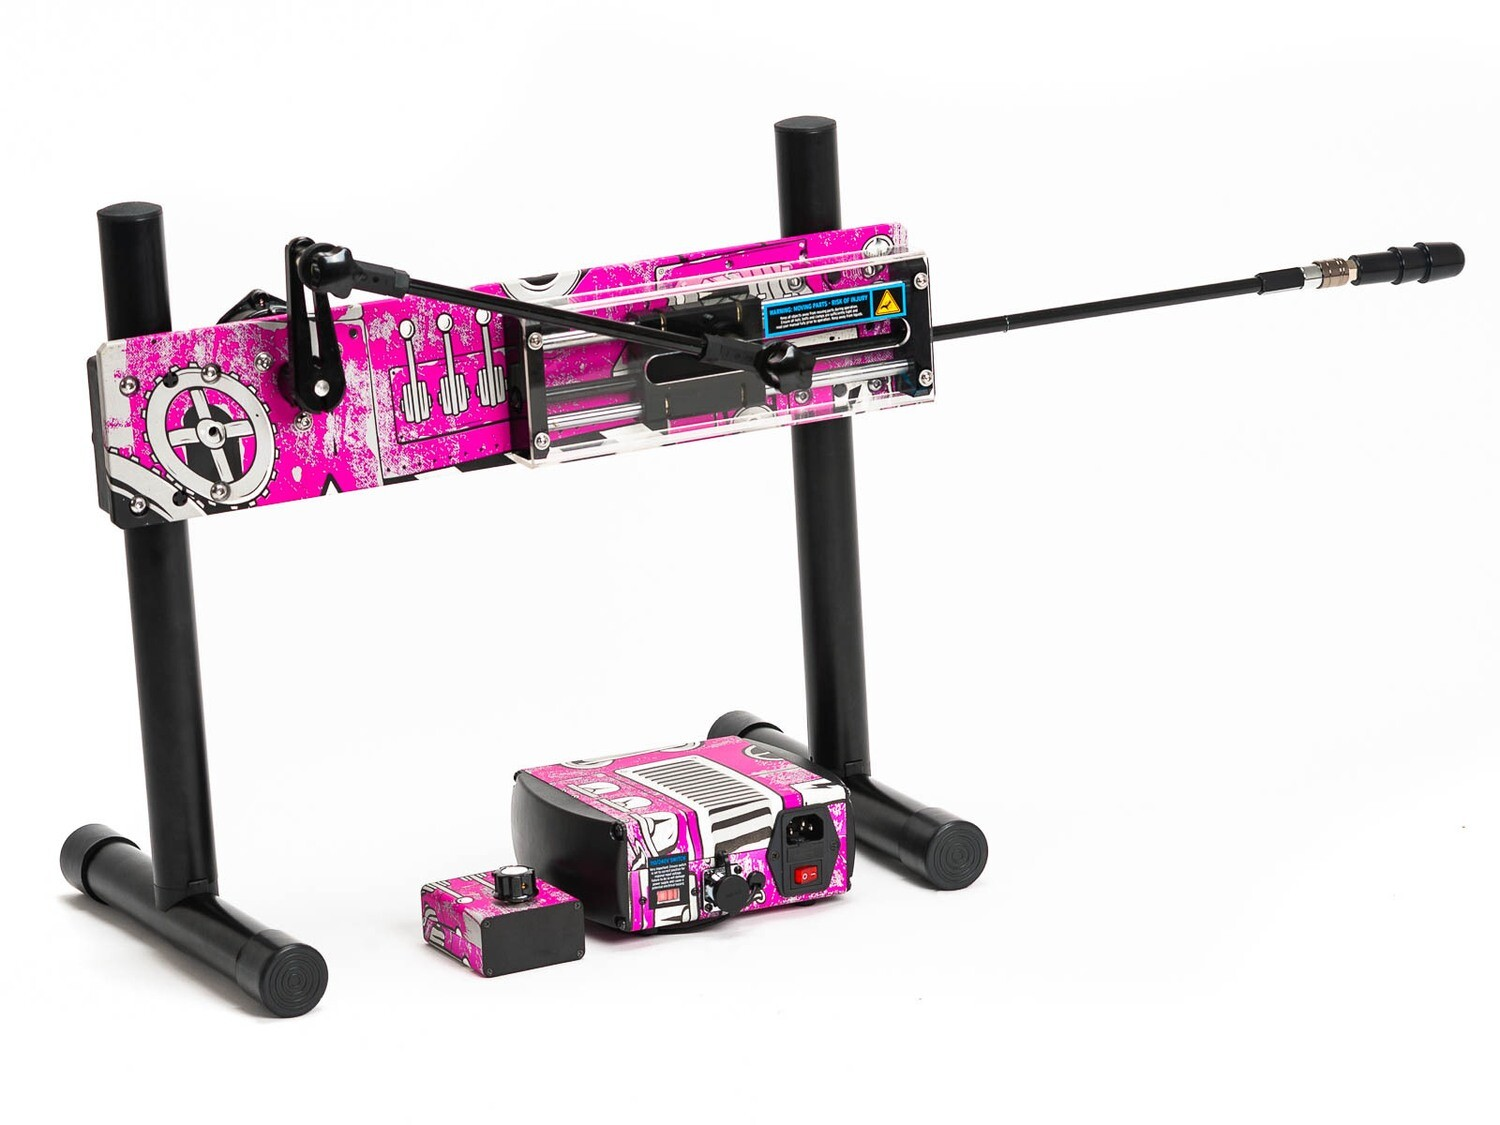 Image showing the pink F-Machine Pro Gen 3